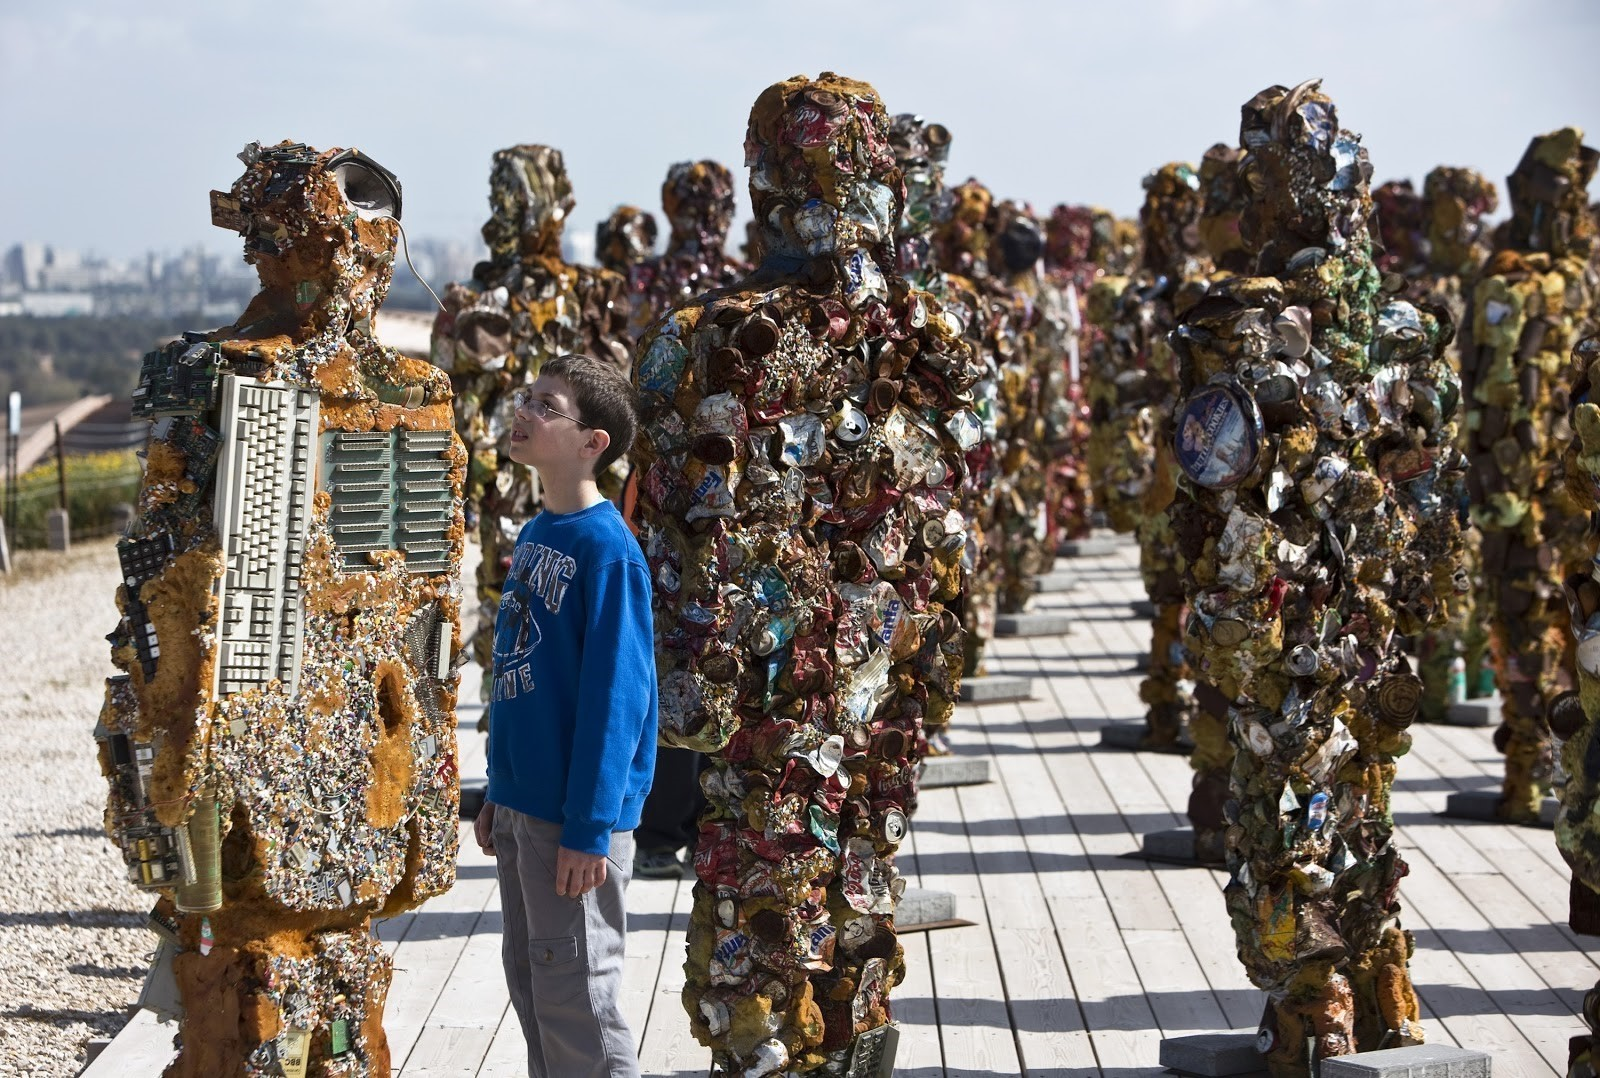 Today, Hiriya has become Ariel Sharon Park, housing art exhibitions like this one made of recycled materials.